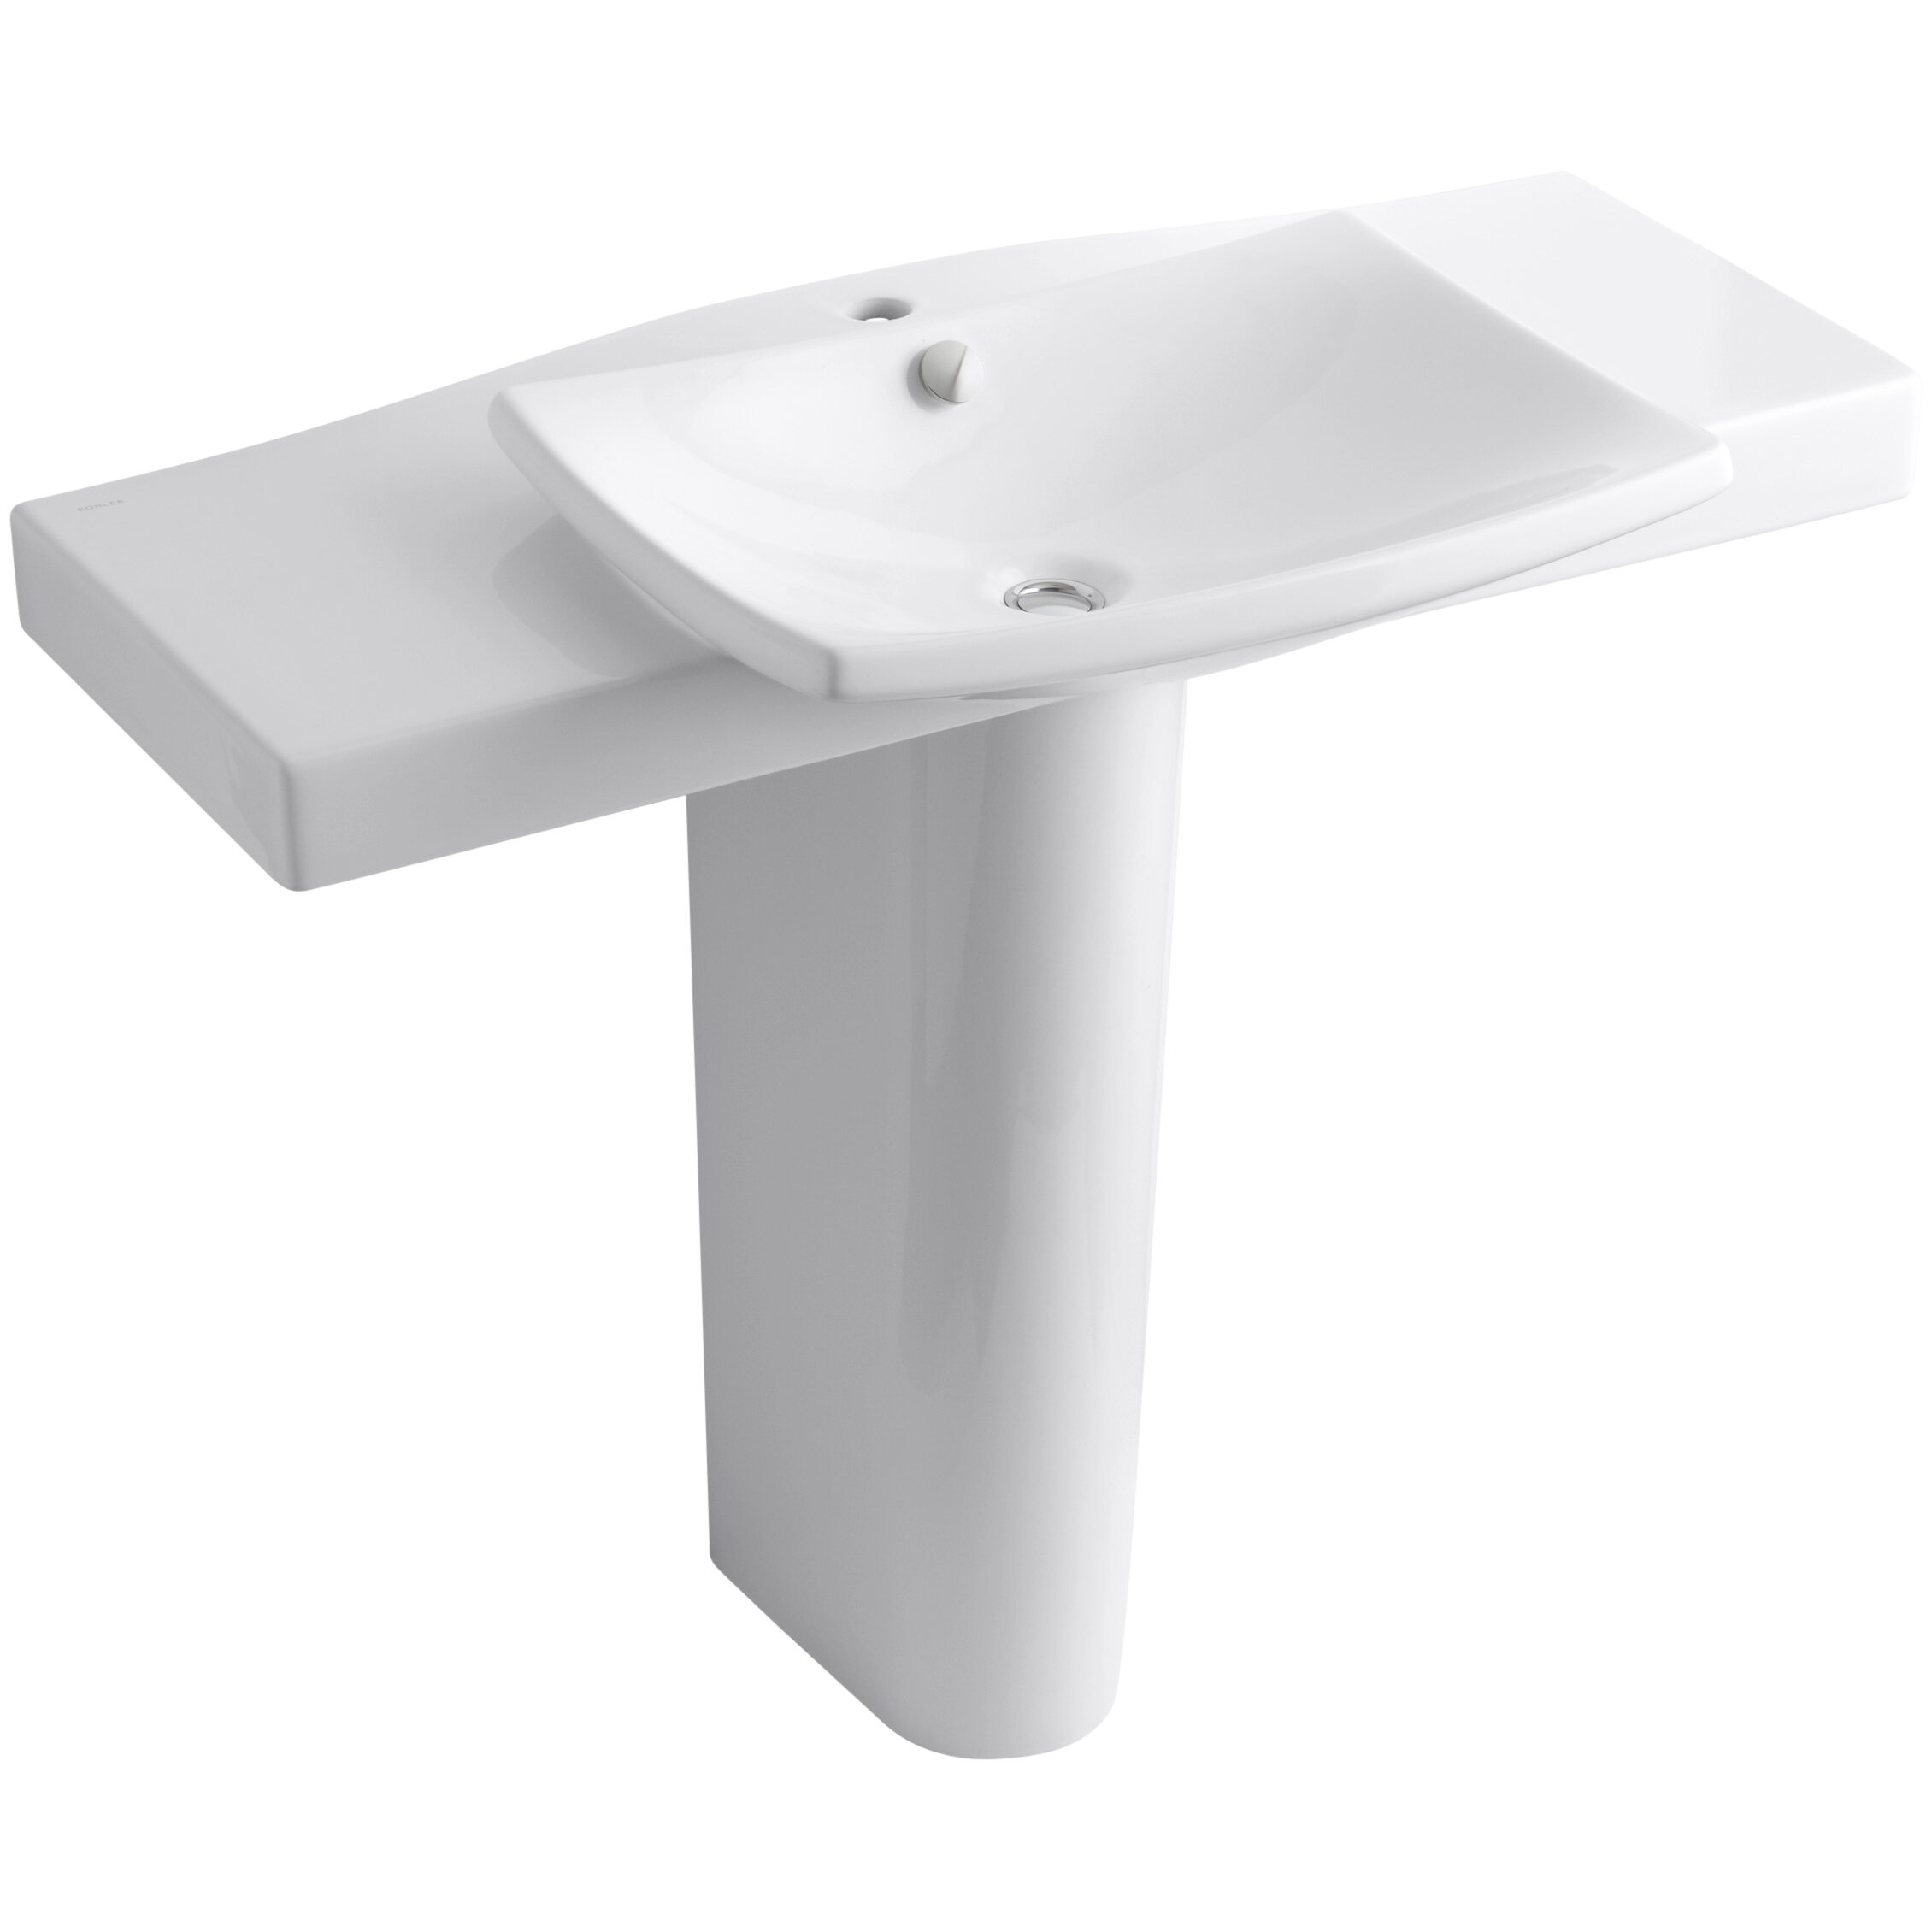 Kohler Escale Pedestal Bathroom Sink With Single Faucet Hole Wayfair